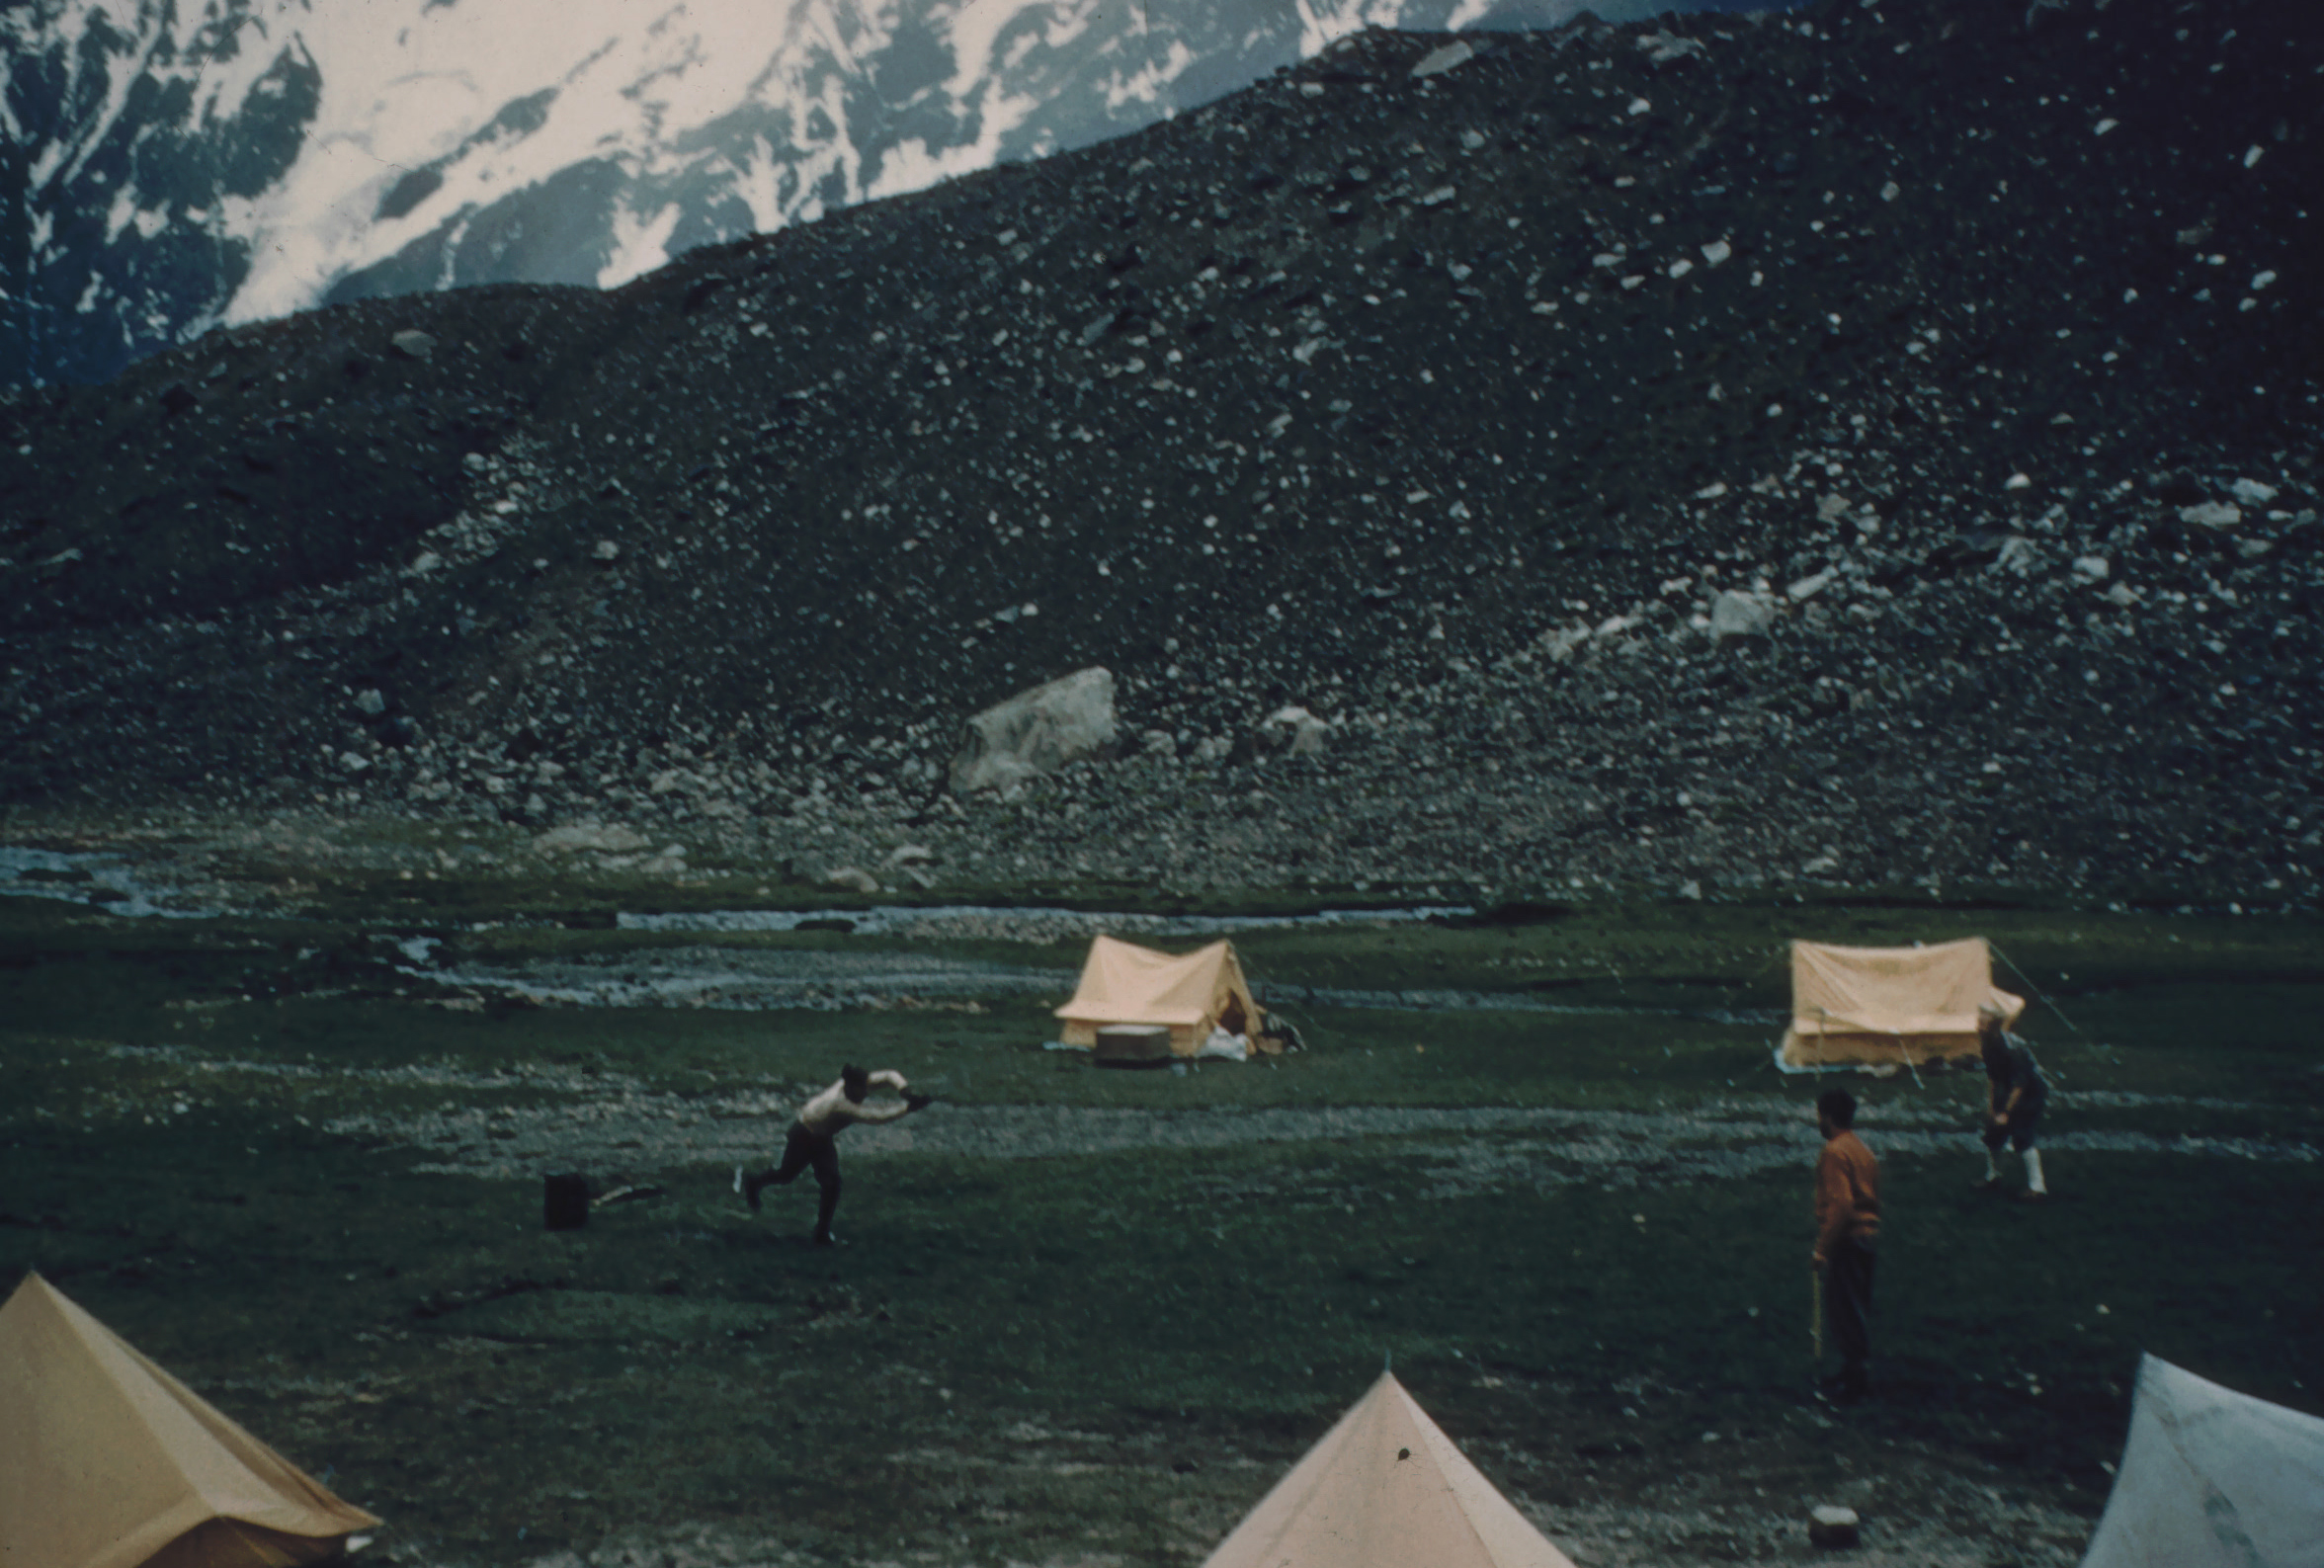 Cricket at base camp with colleagues & porters. Ted is the batsman (photo from Ted Norrish collection)